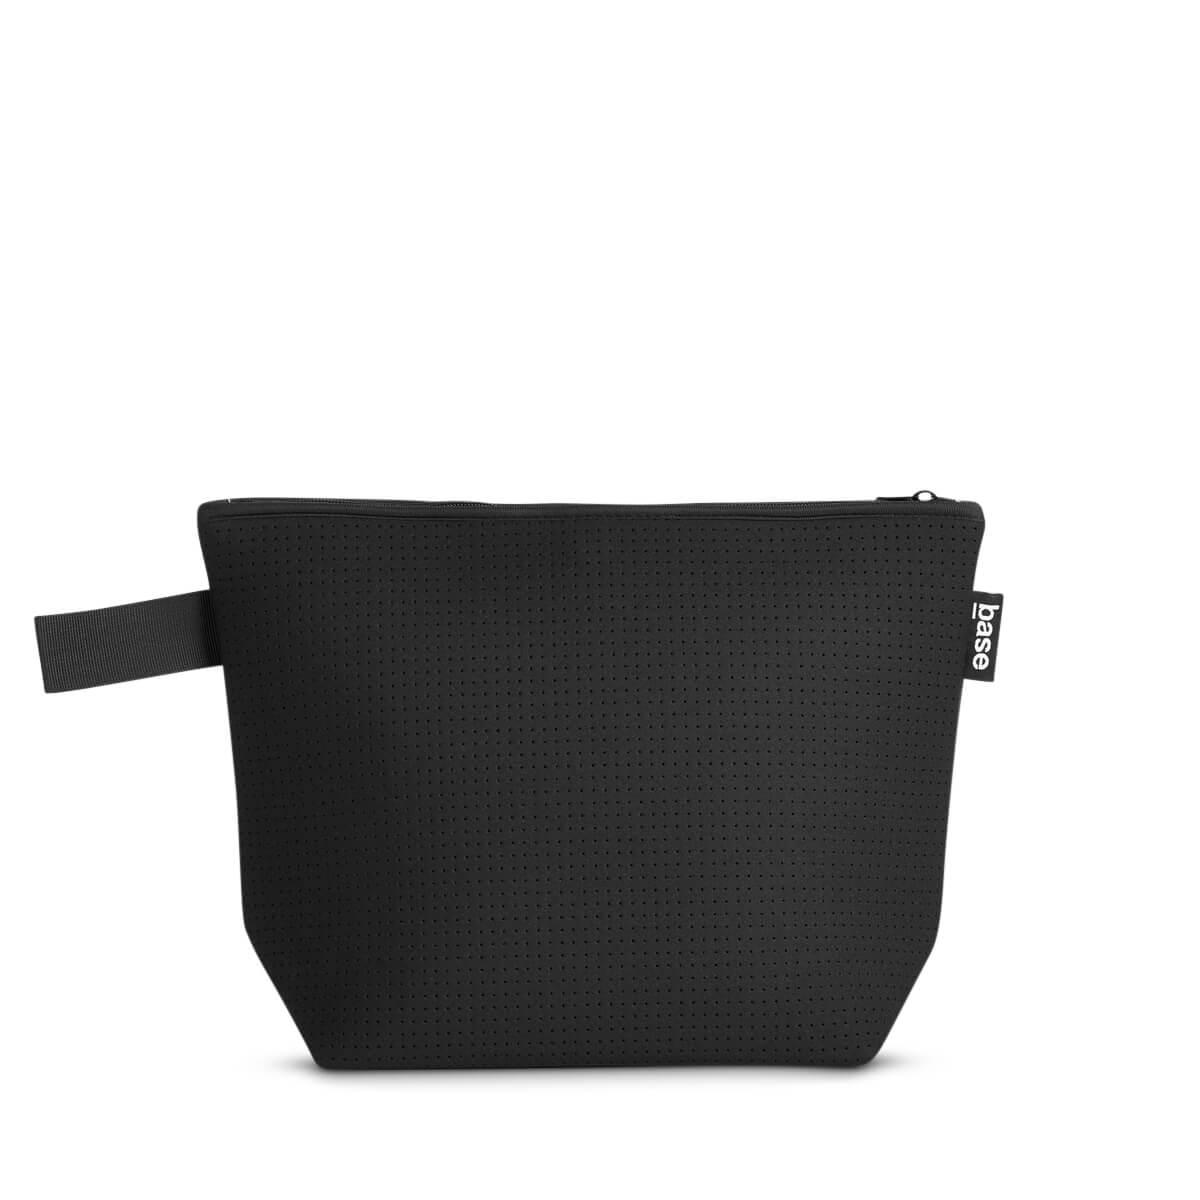 Base Neoprene Large Stash Bag - Black